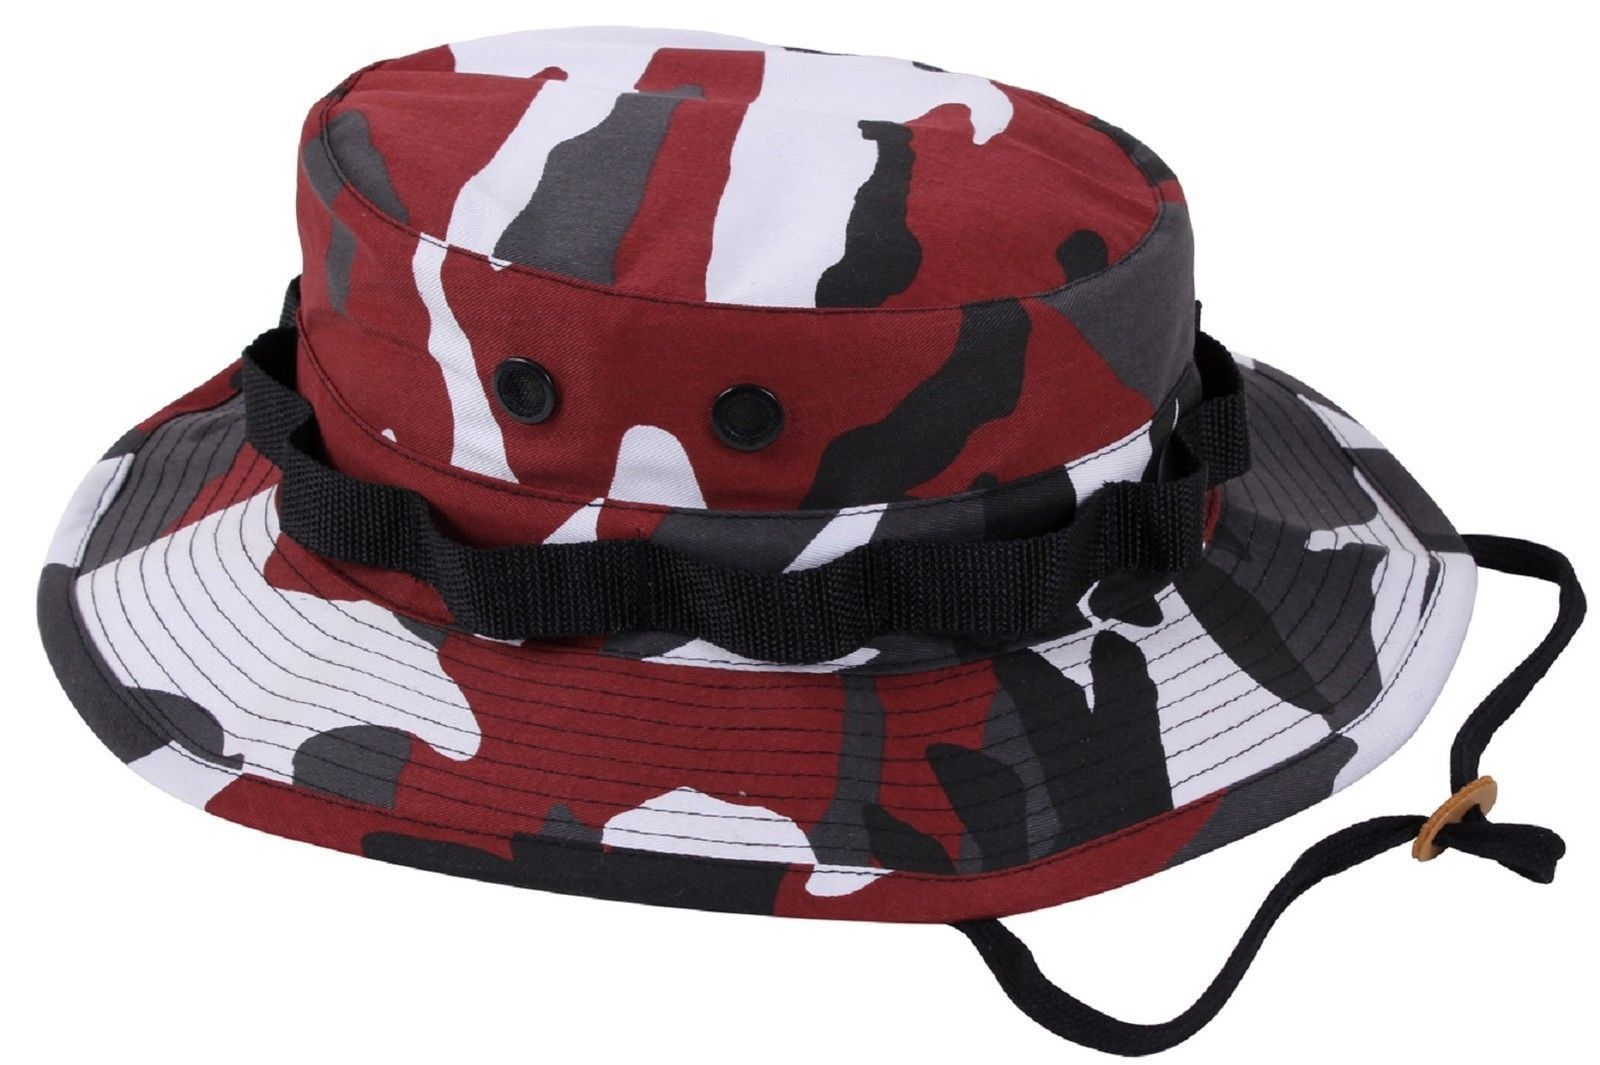 Red   Black Camouflage Boonie Bucket Hat w  Chin Strap S - XL Rothco 5548 61e3041b4a8